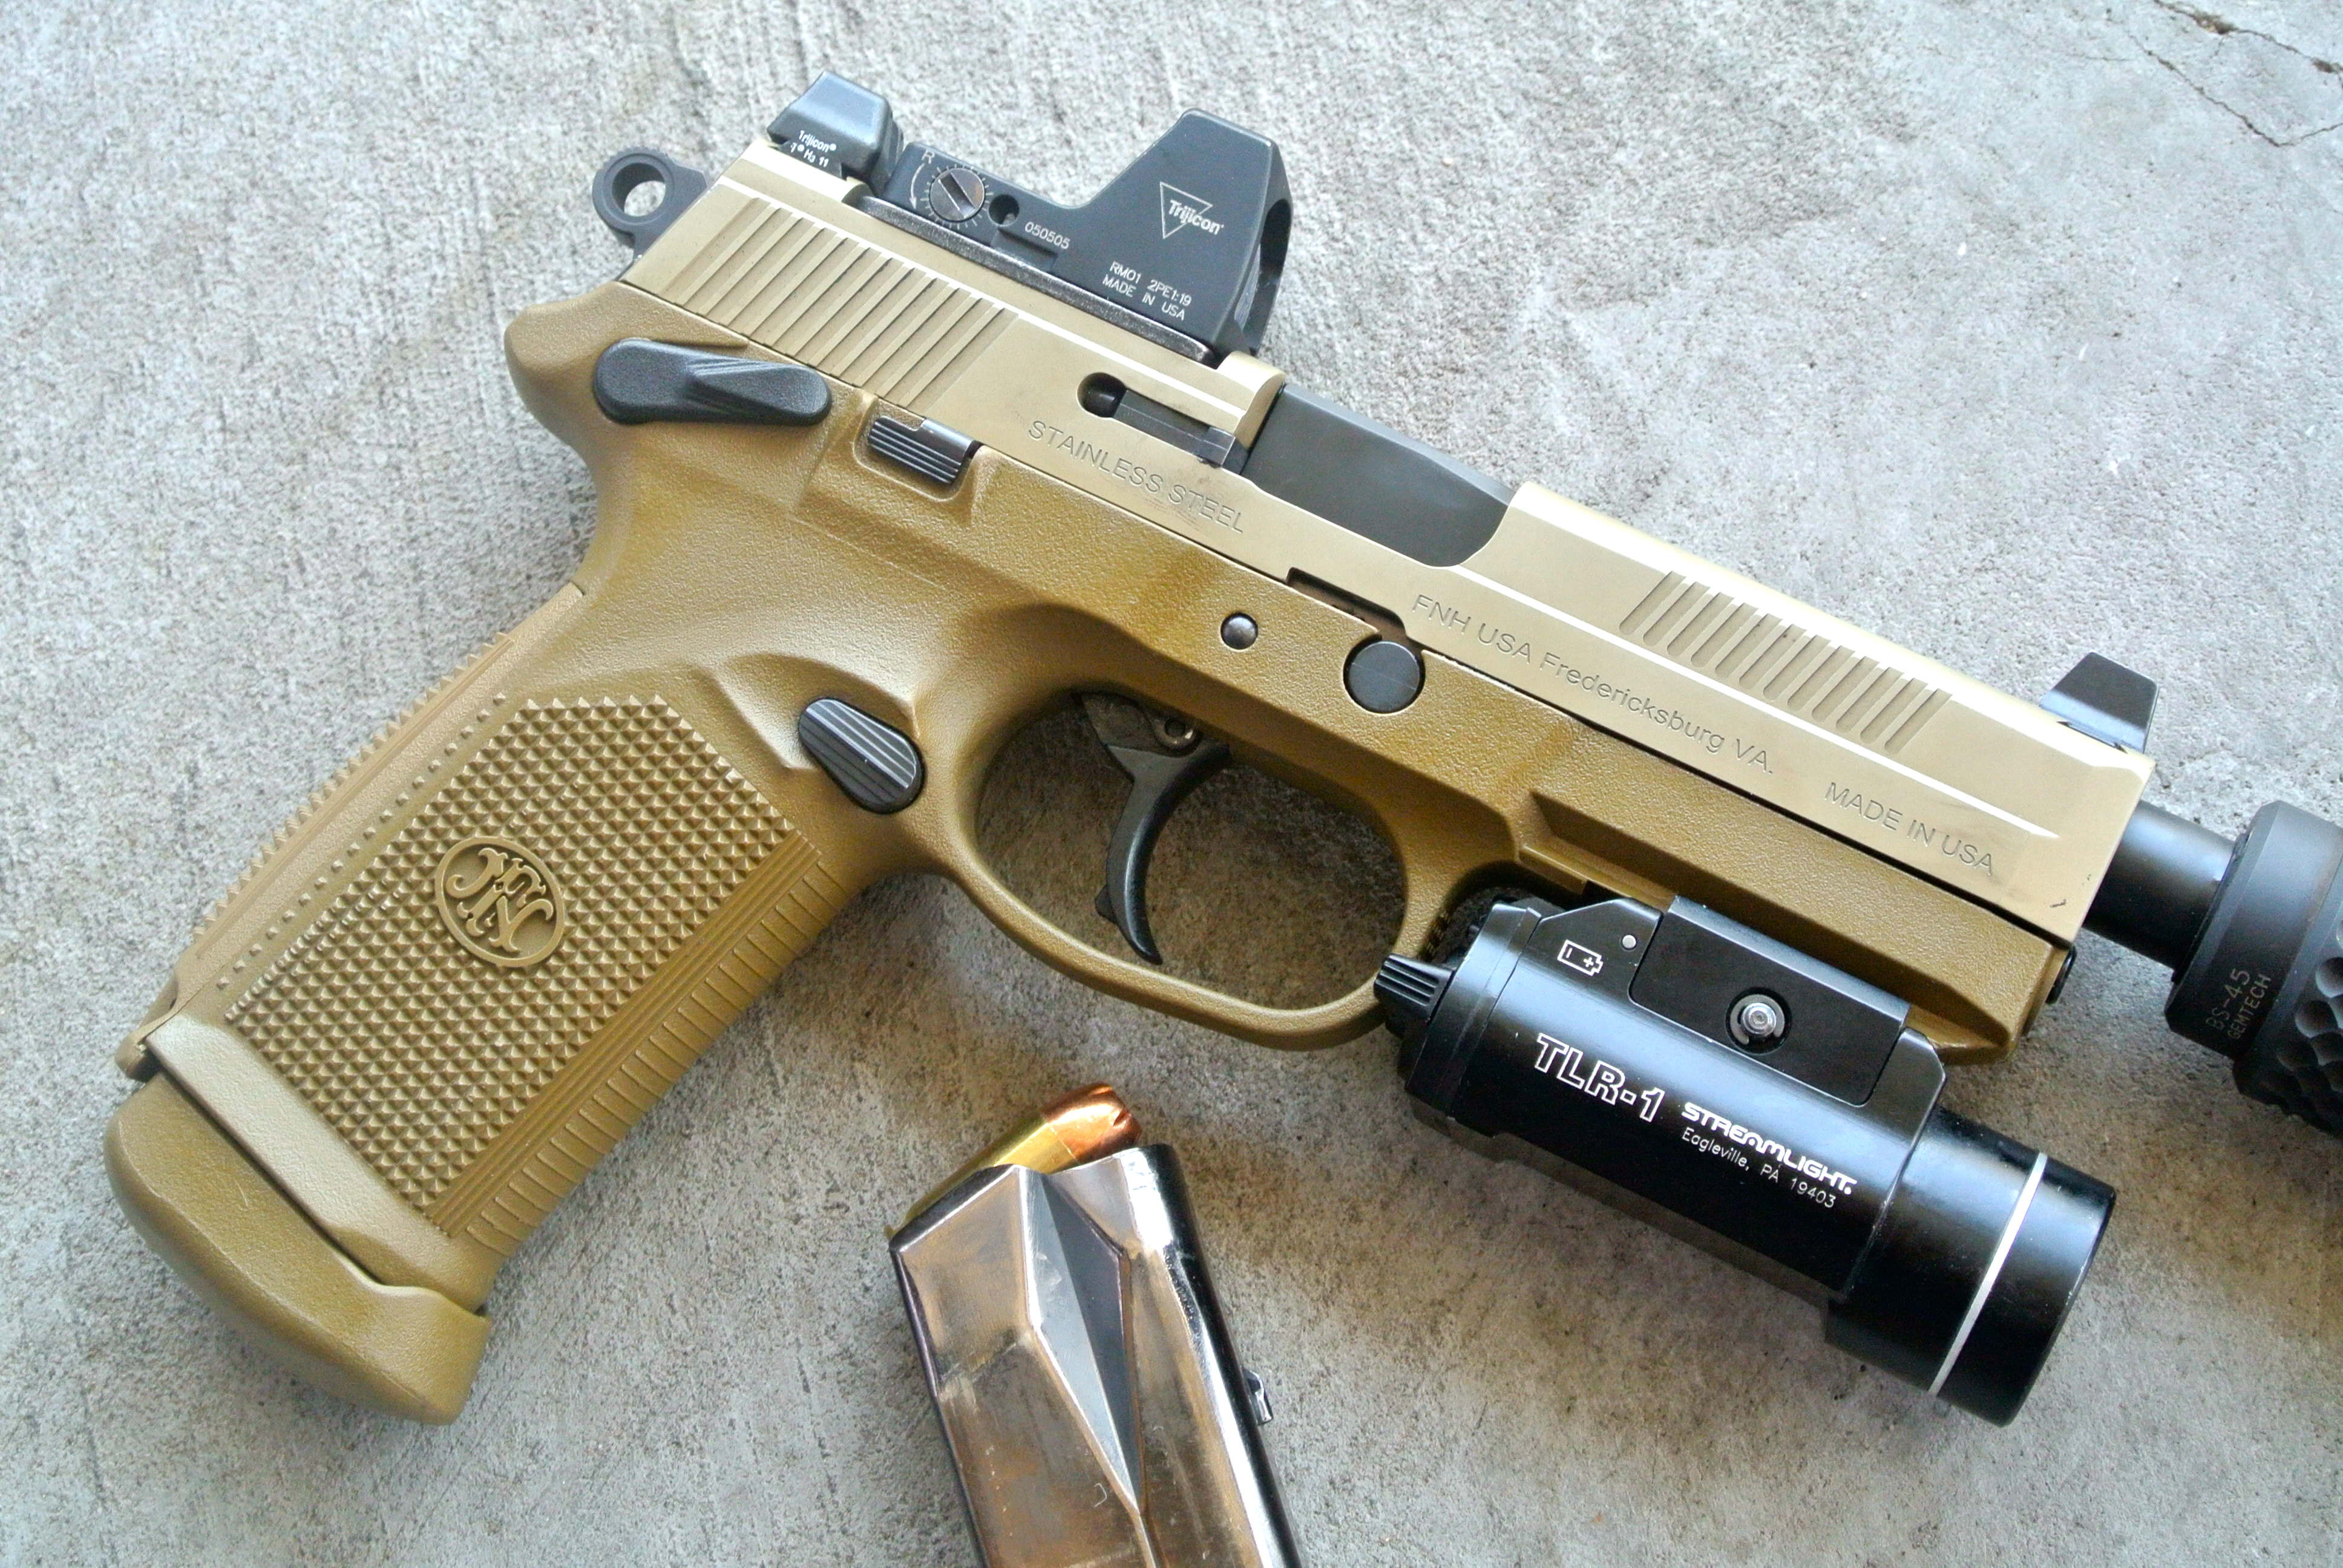 weapons silencer fnp - photo #25